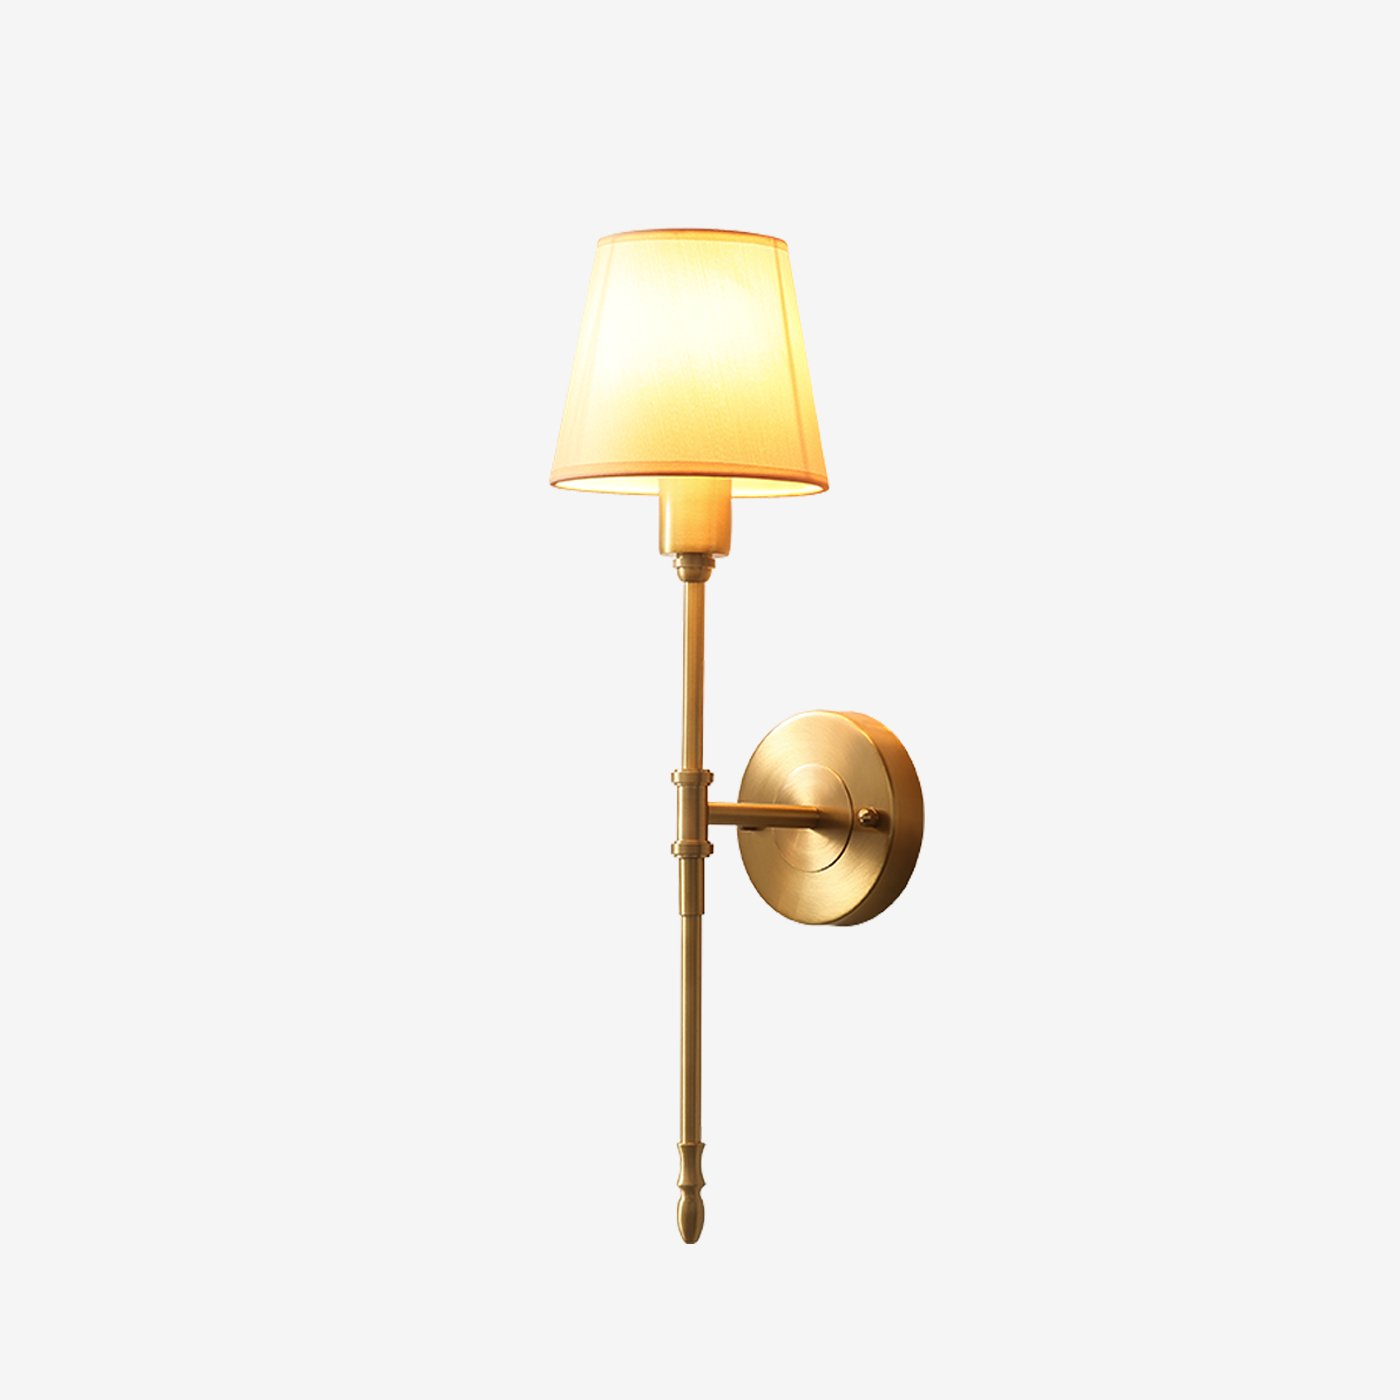 Lop Wall Lamp Brass Finish Lights on